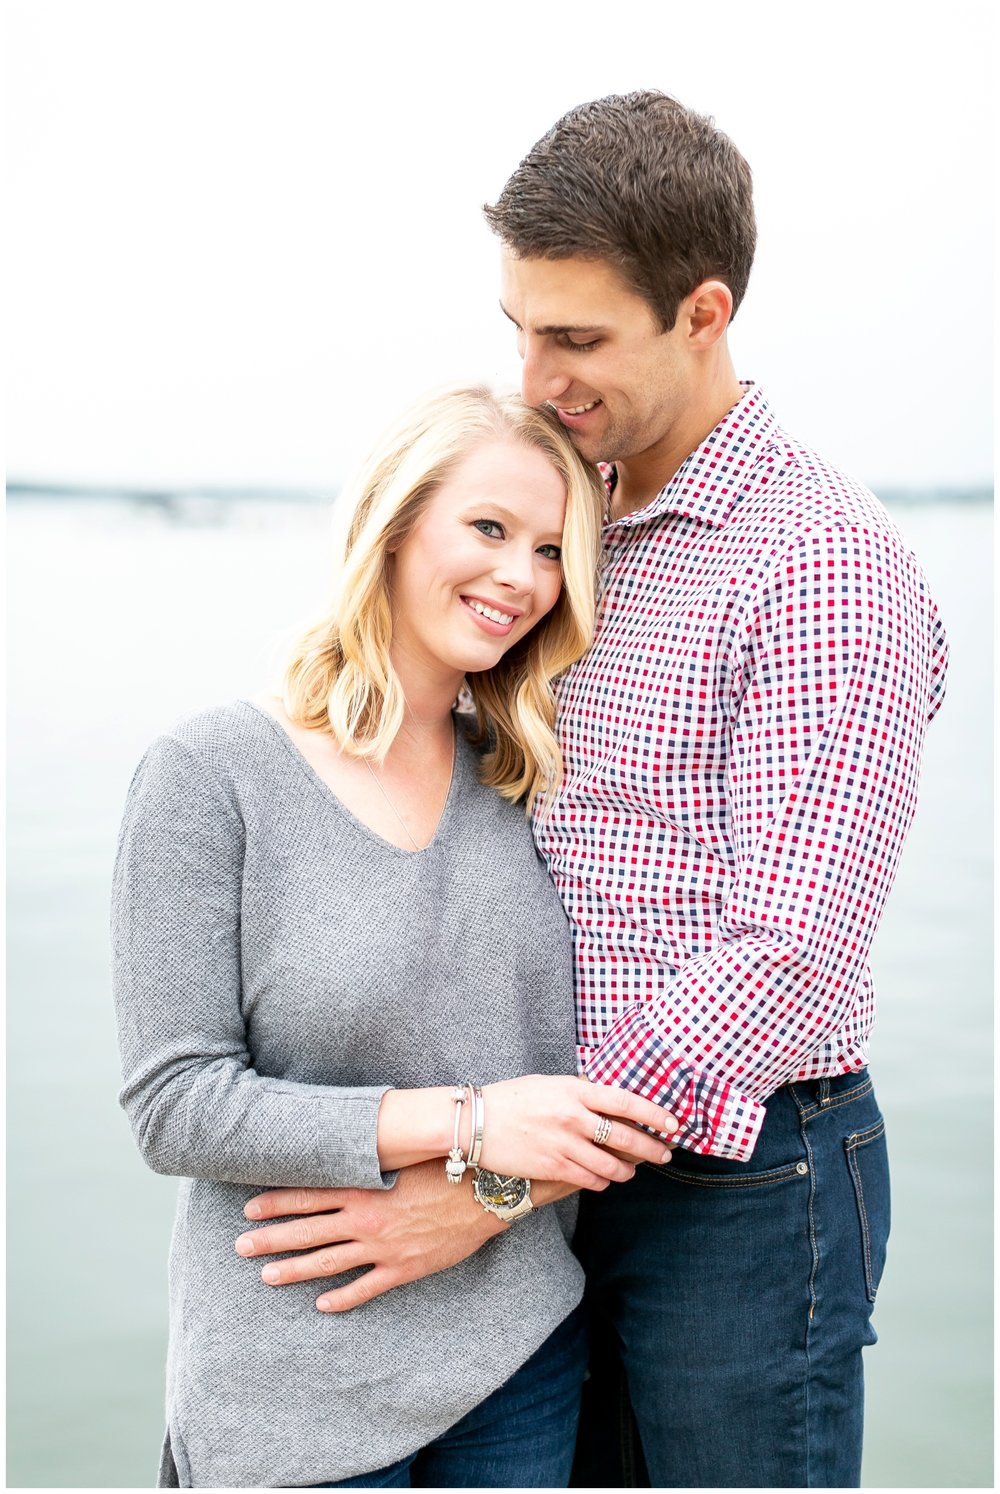 Downtown_madison_wisconsin_engagement_session_1521.jpg